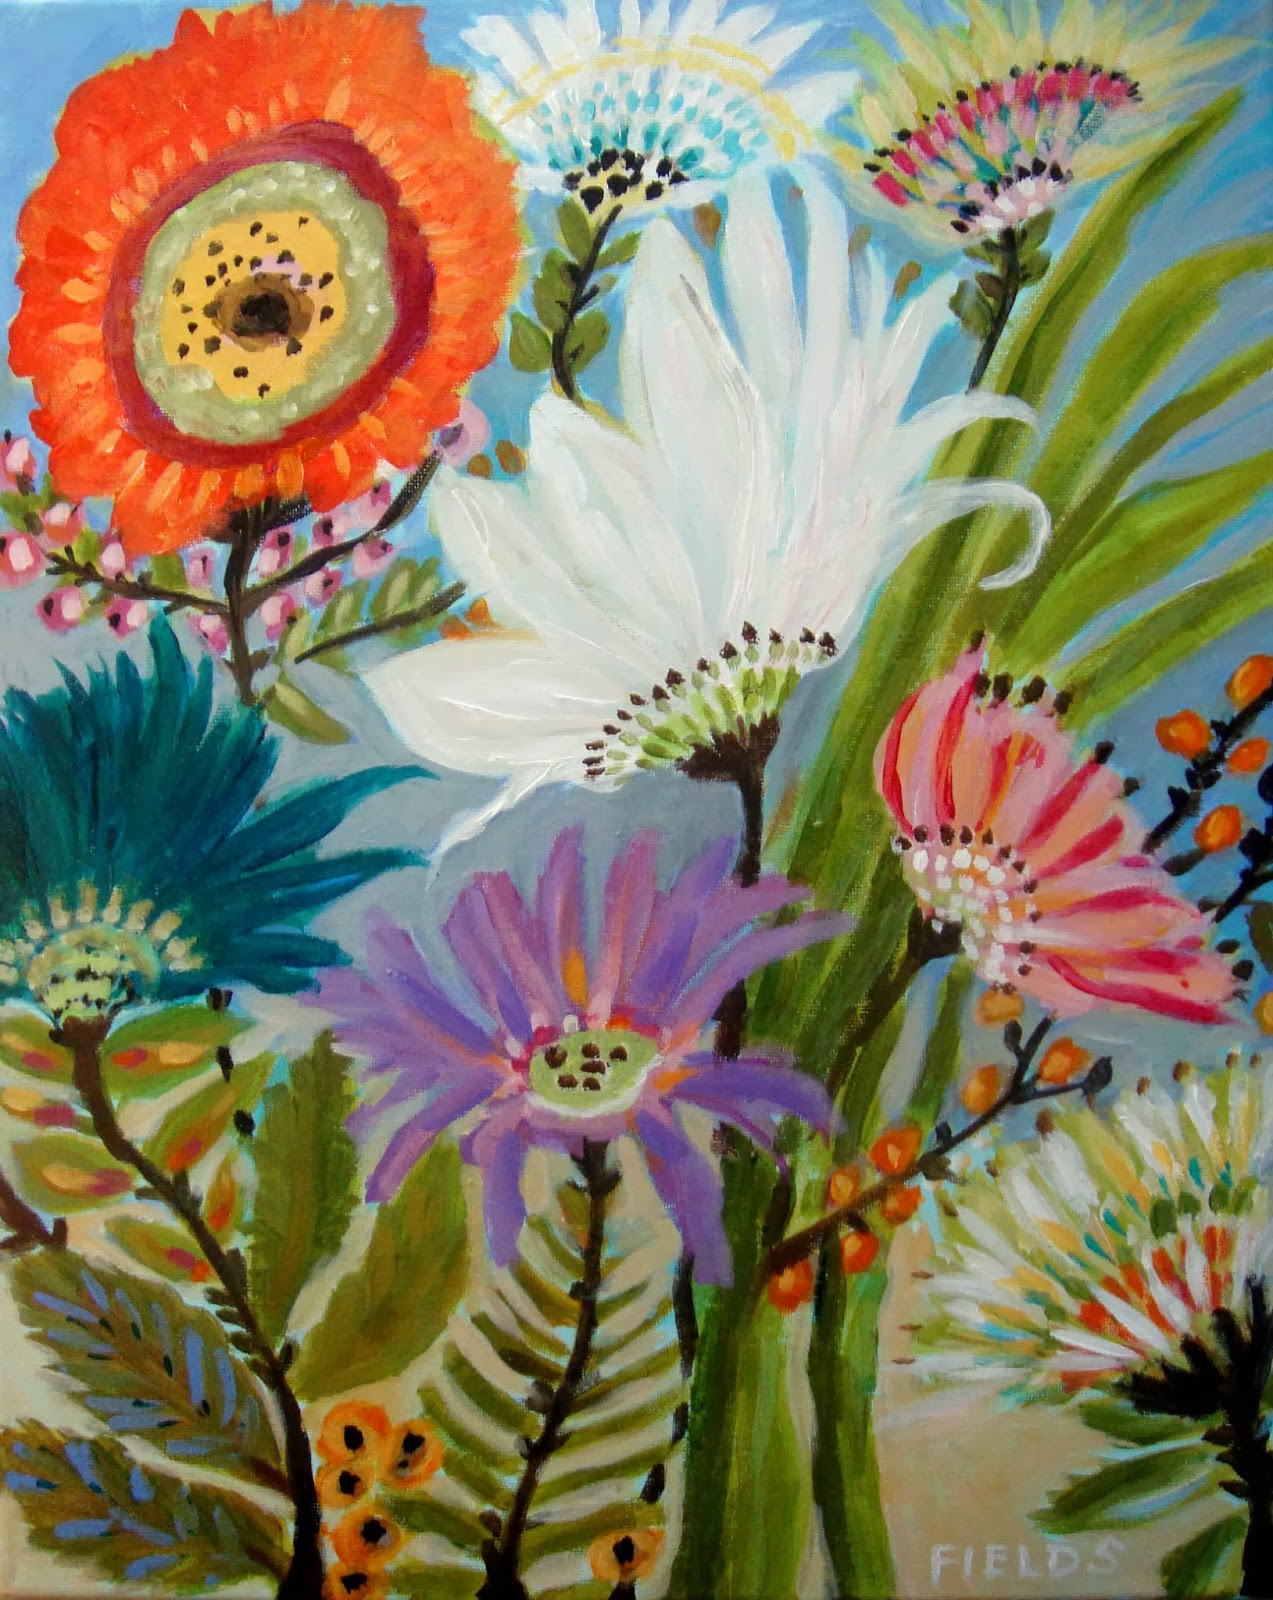 About Starting An Etsy Shop Selling Your Paintings Thoughts